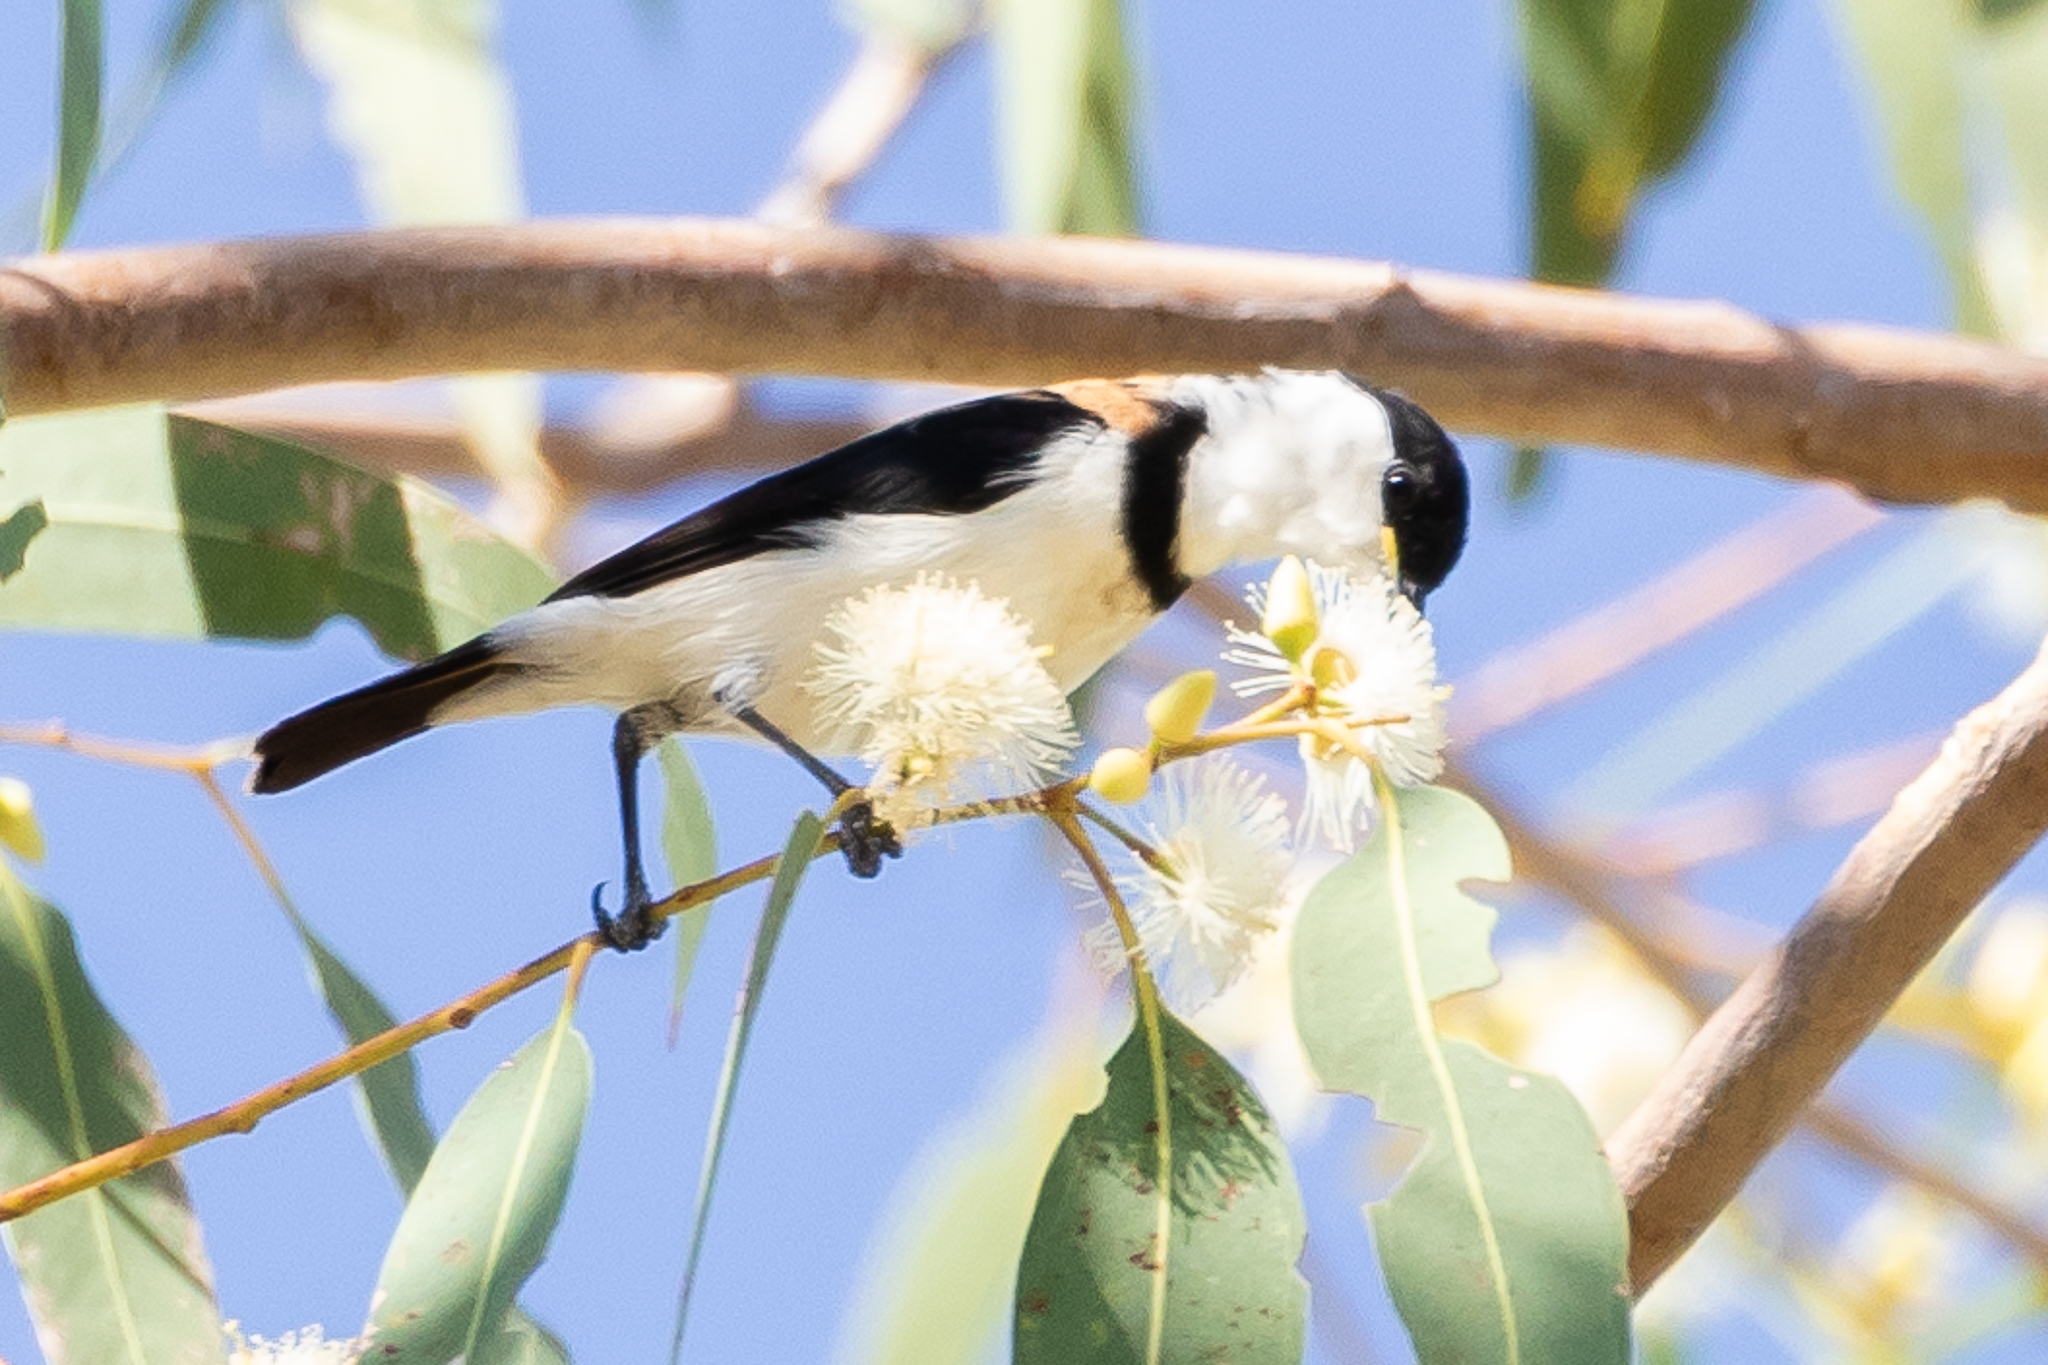 The Banded Honeyeater (14 cm) lives in forests and woodlands of far north Australia, feeding in Eucalypts and Paperbarks.